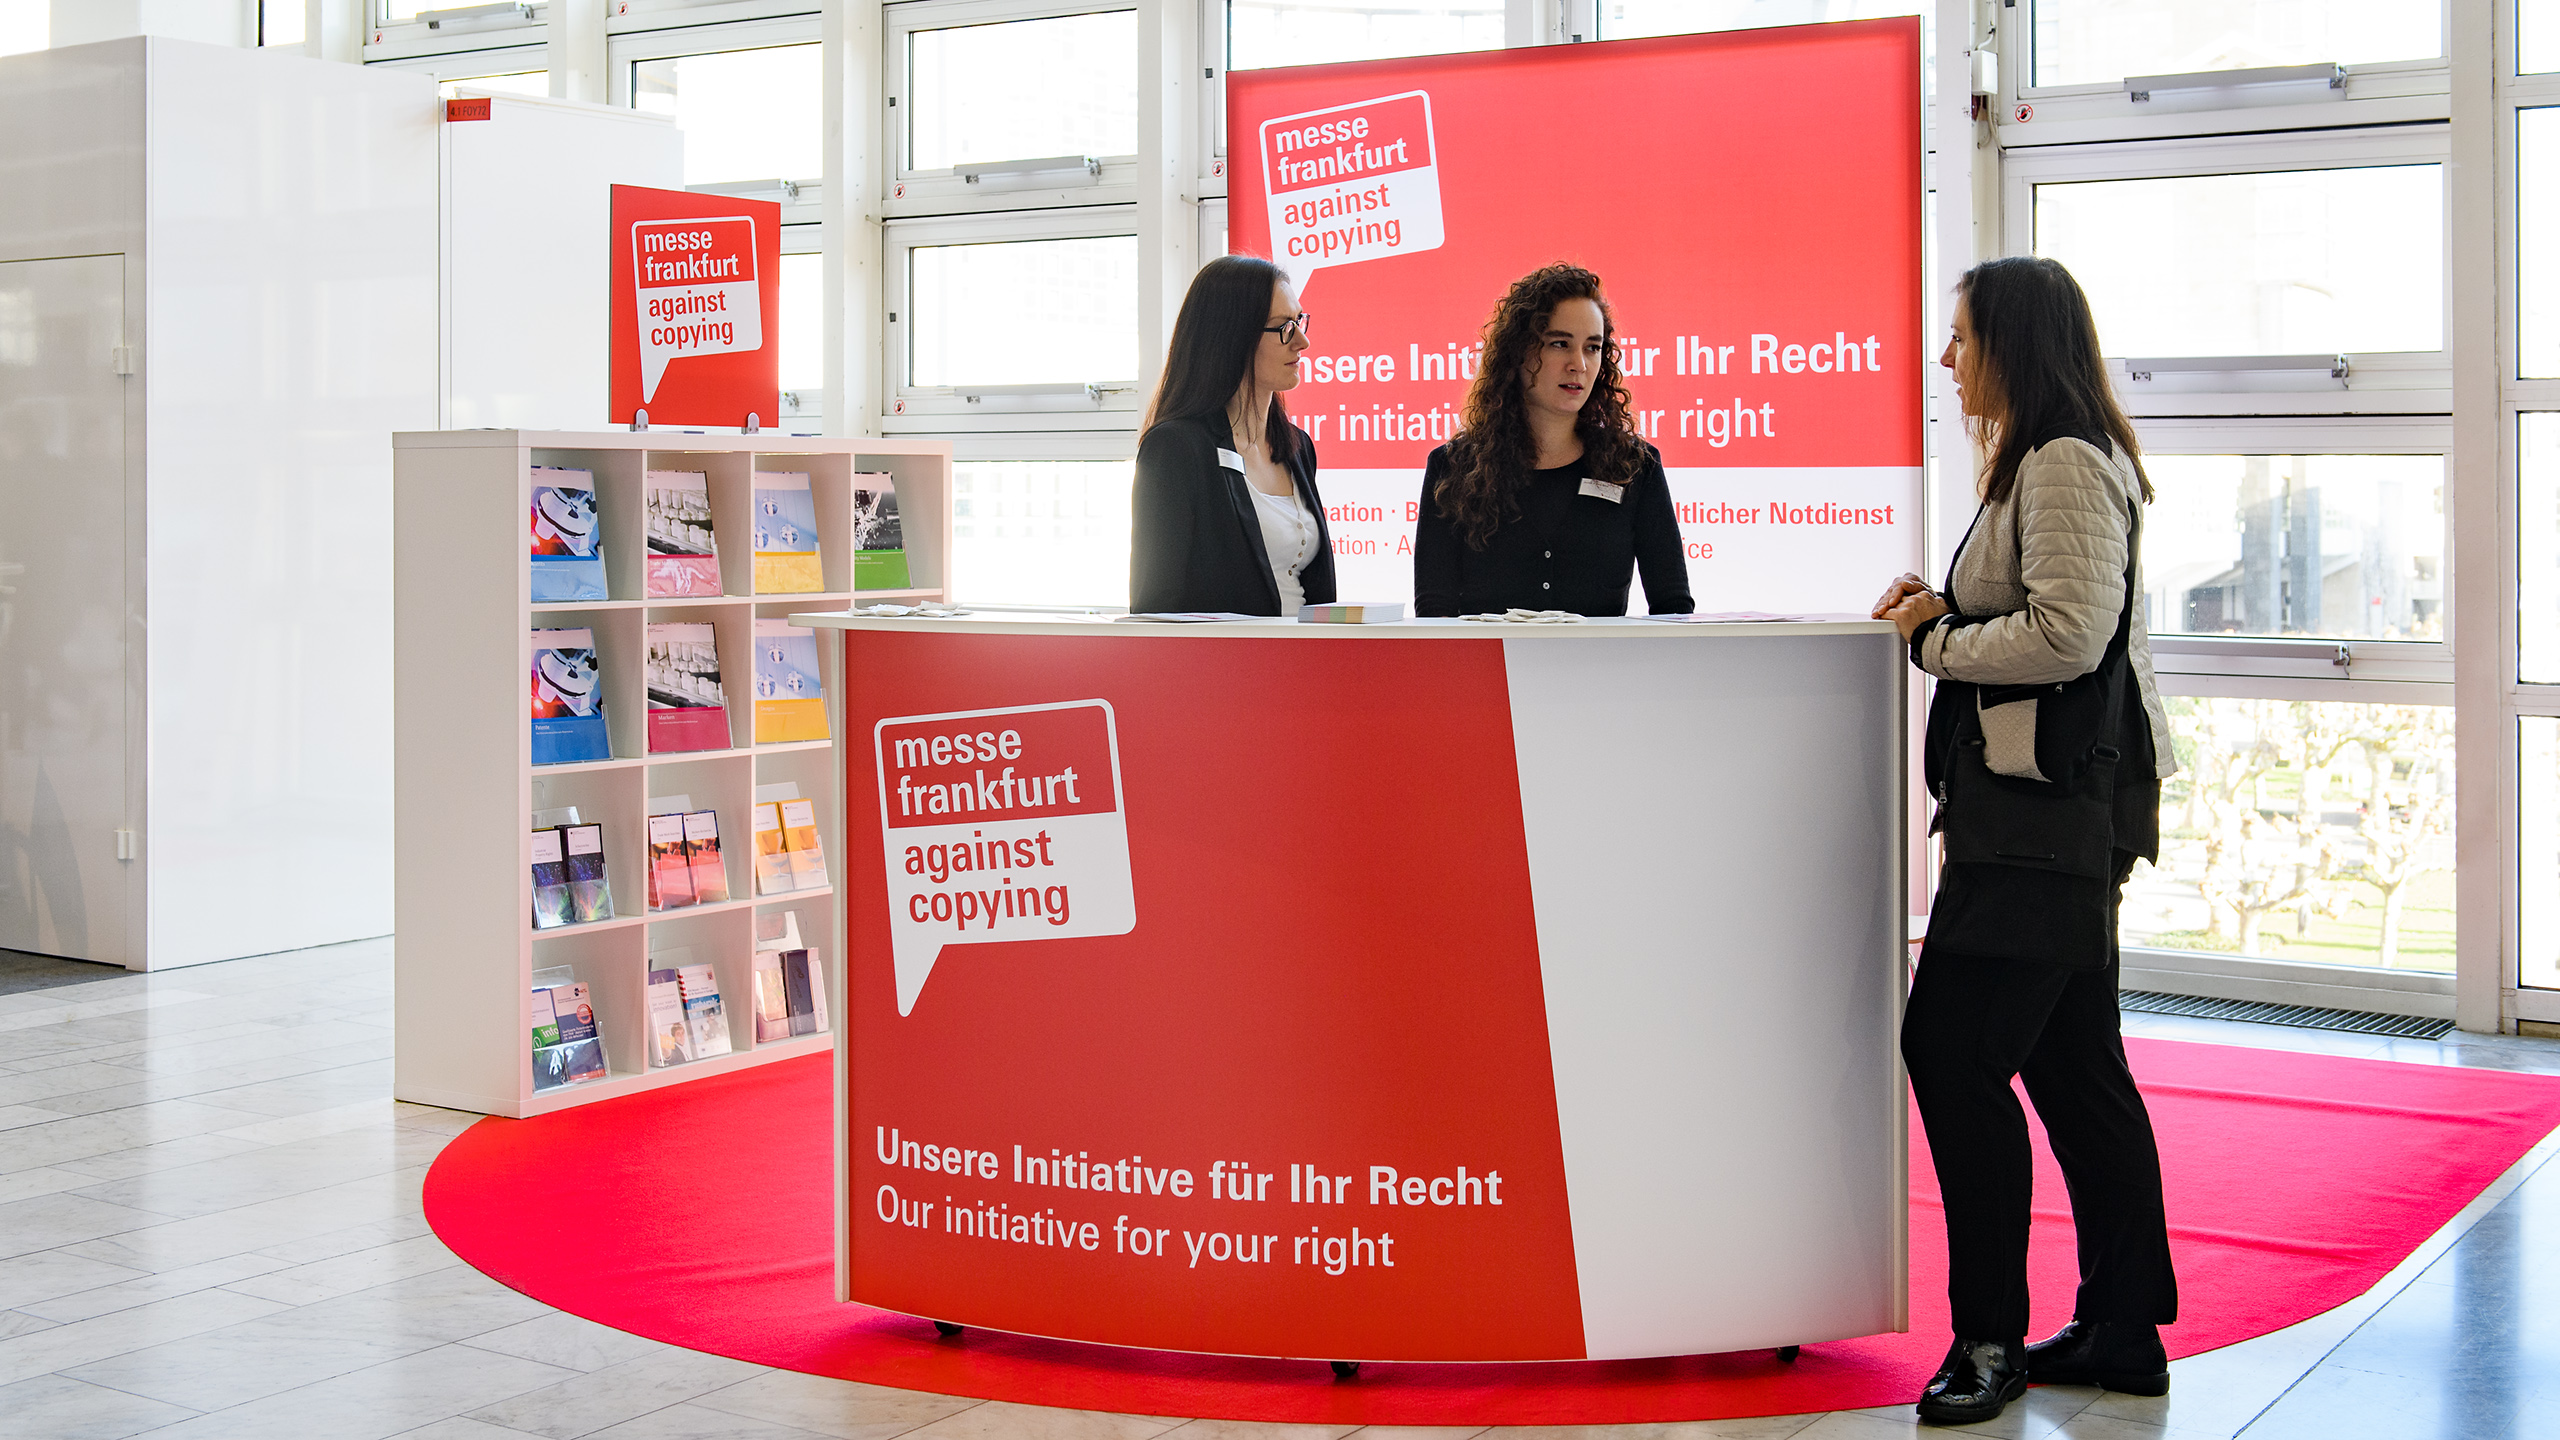 Messe Frankfurt against Copying booth